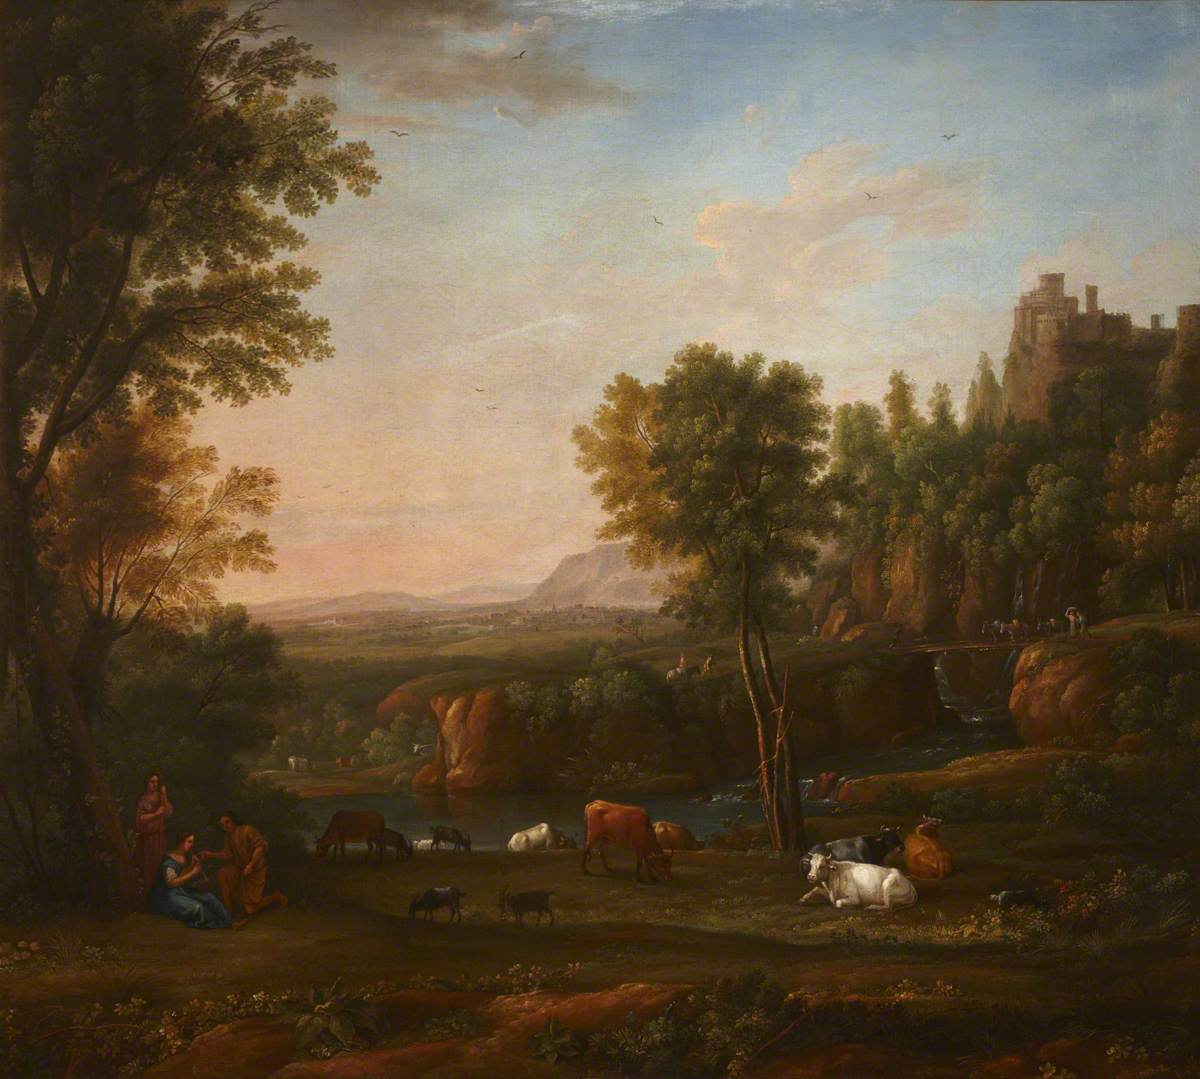 A Wooded River Landscape with a Piping Shepherdess, Cattle and Goats